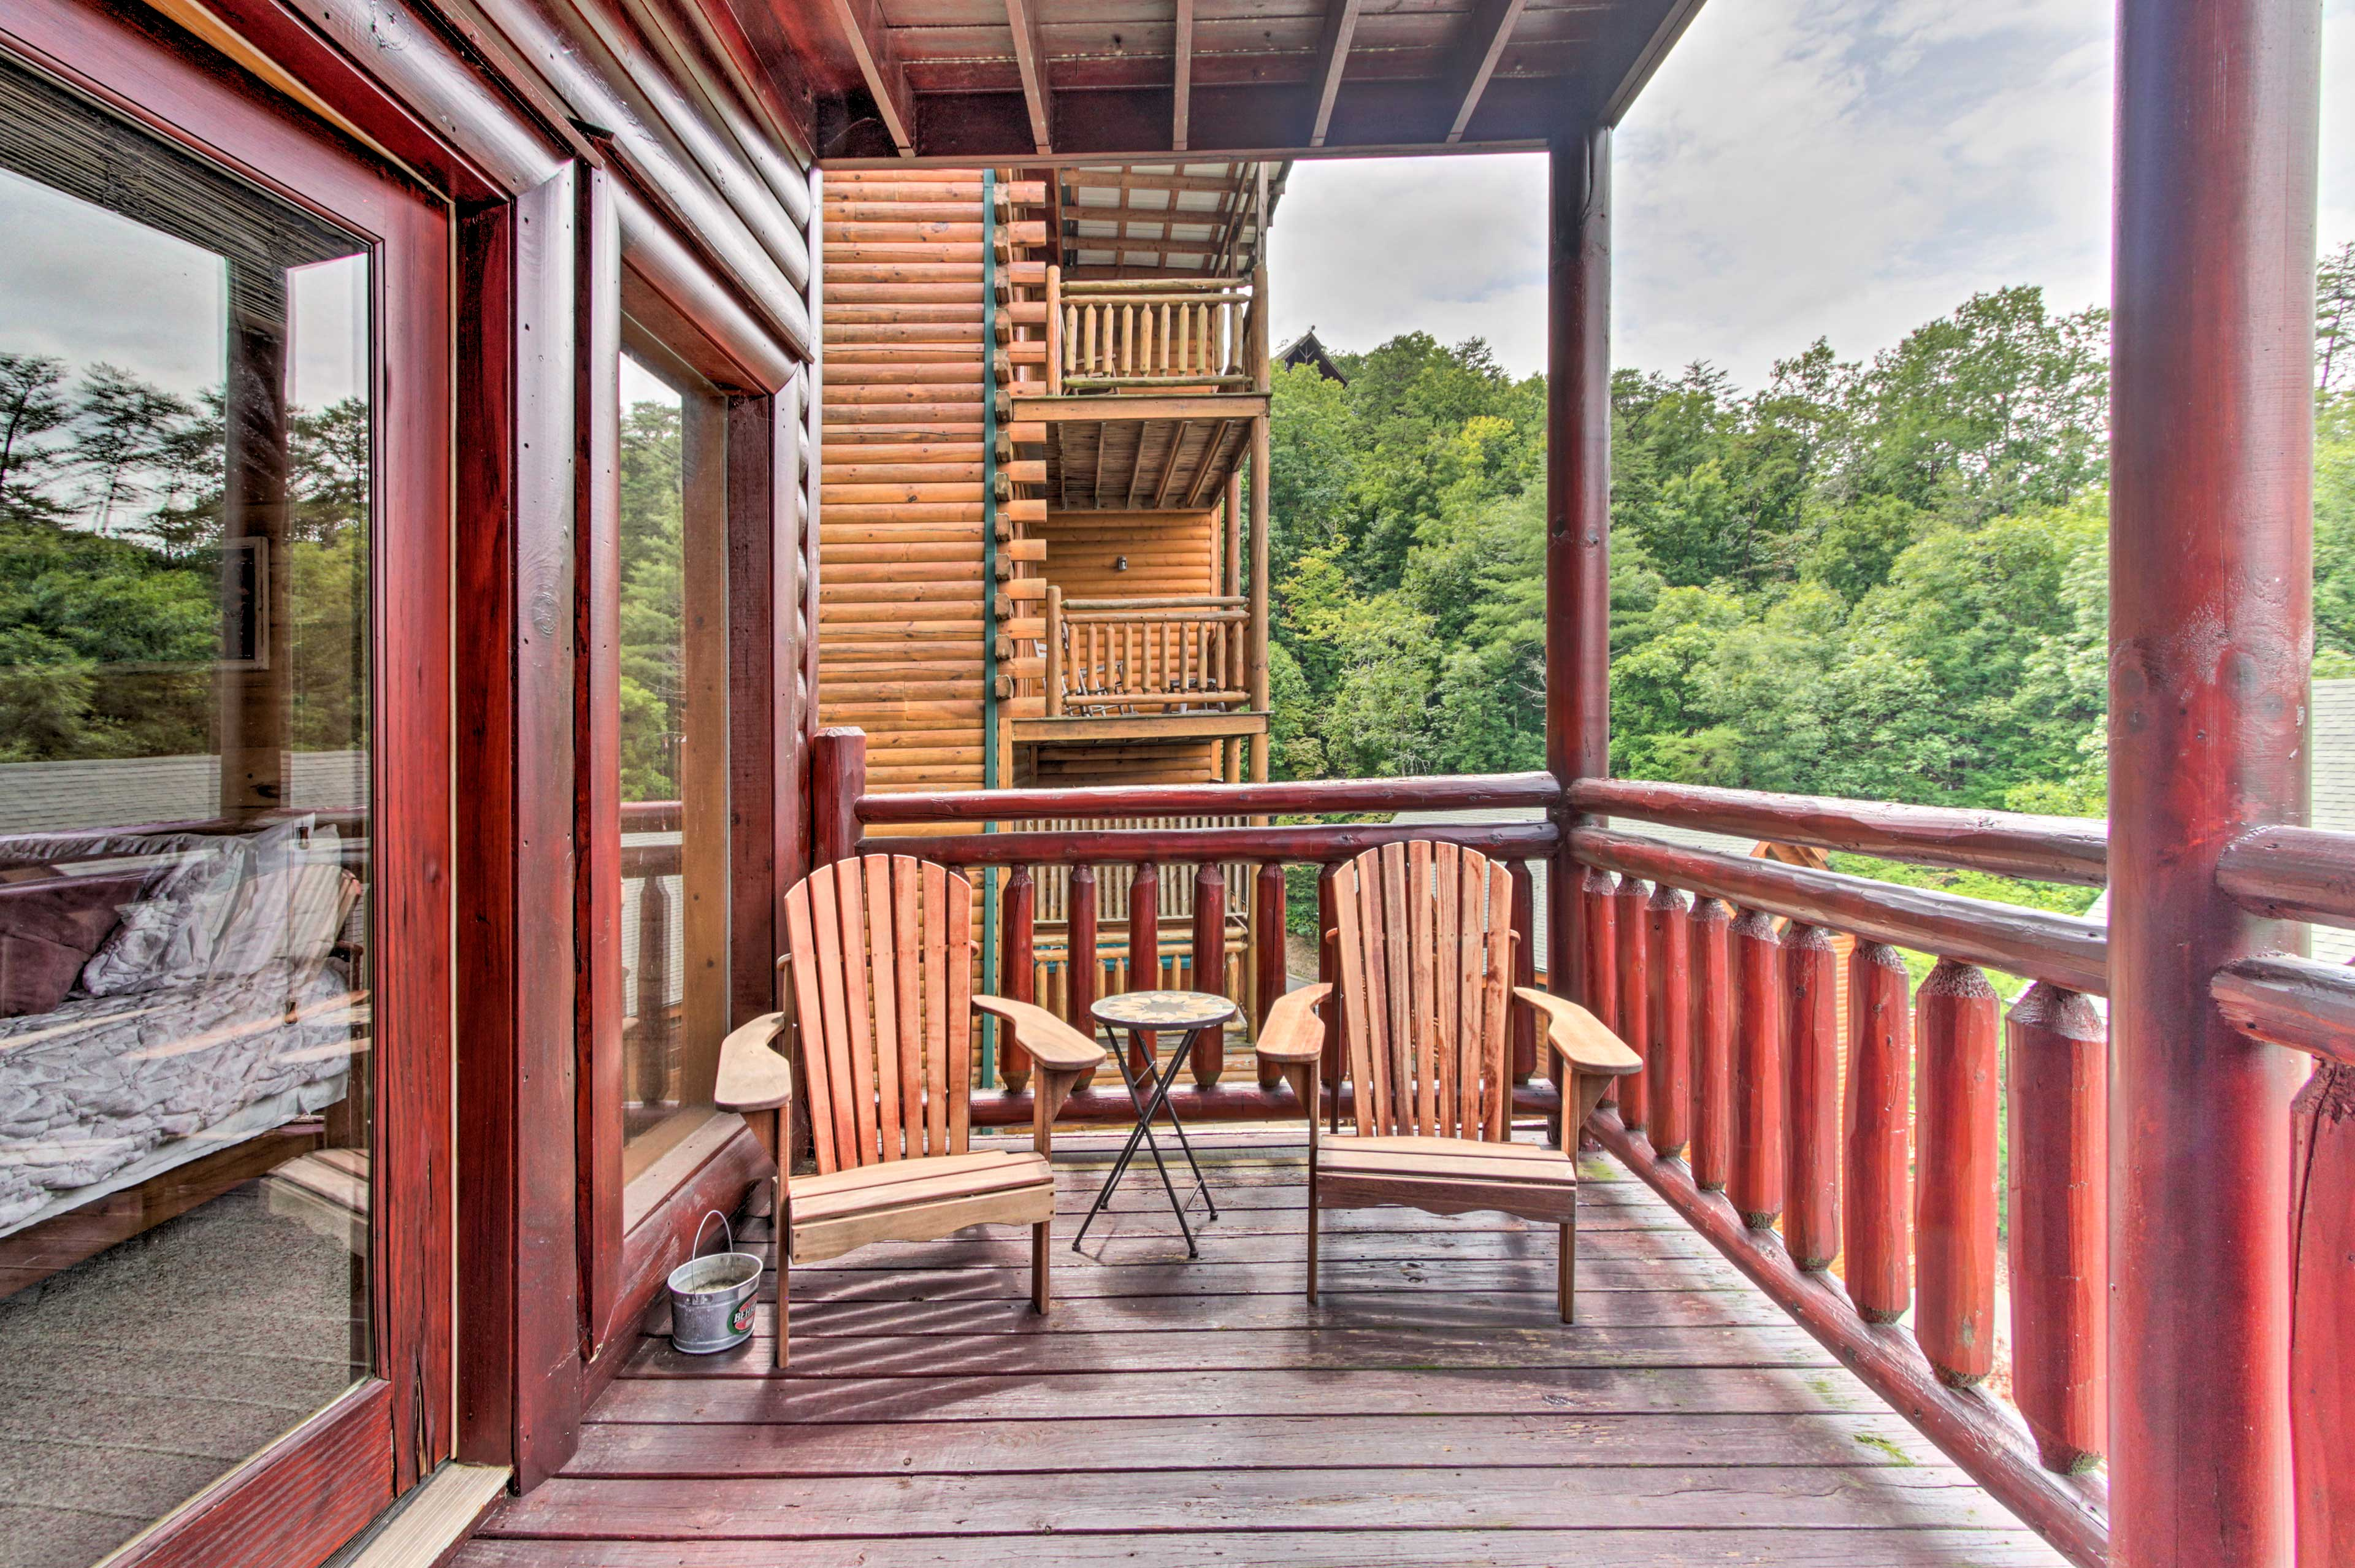 Sit put on the deck and take in the fresh air.